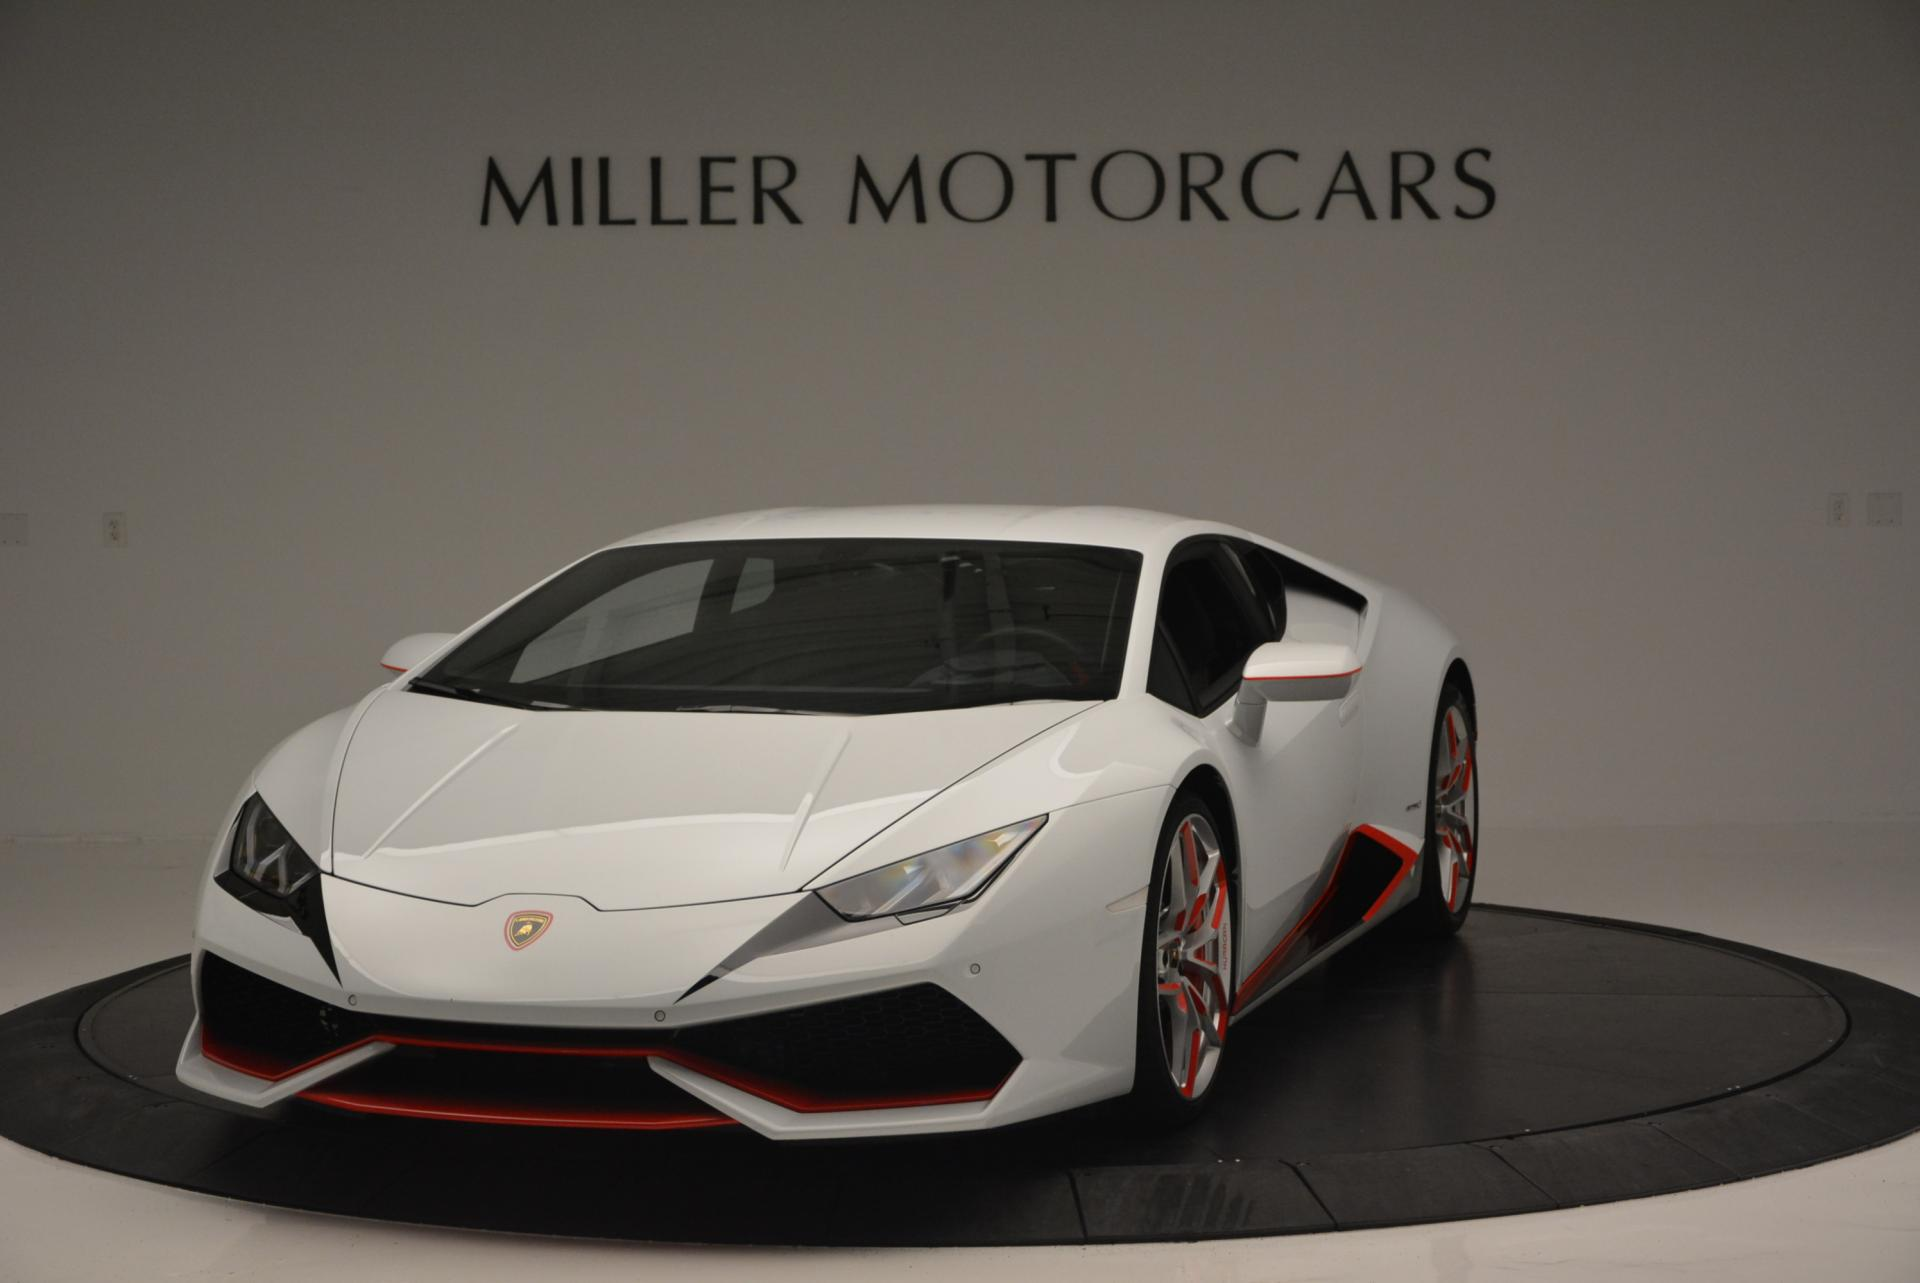 Used 2015 Lamborghini Huracan LP610-4 for sale Sold at Pagani of Greenwich in Greenwich CT 06830 1